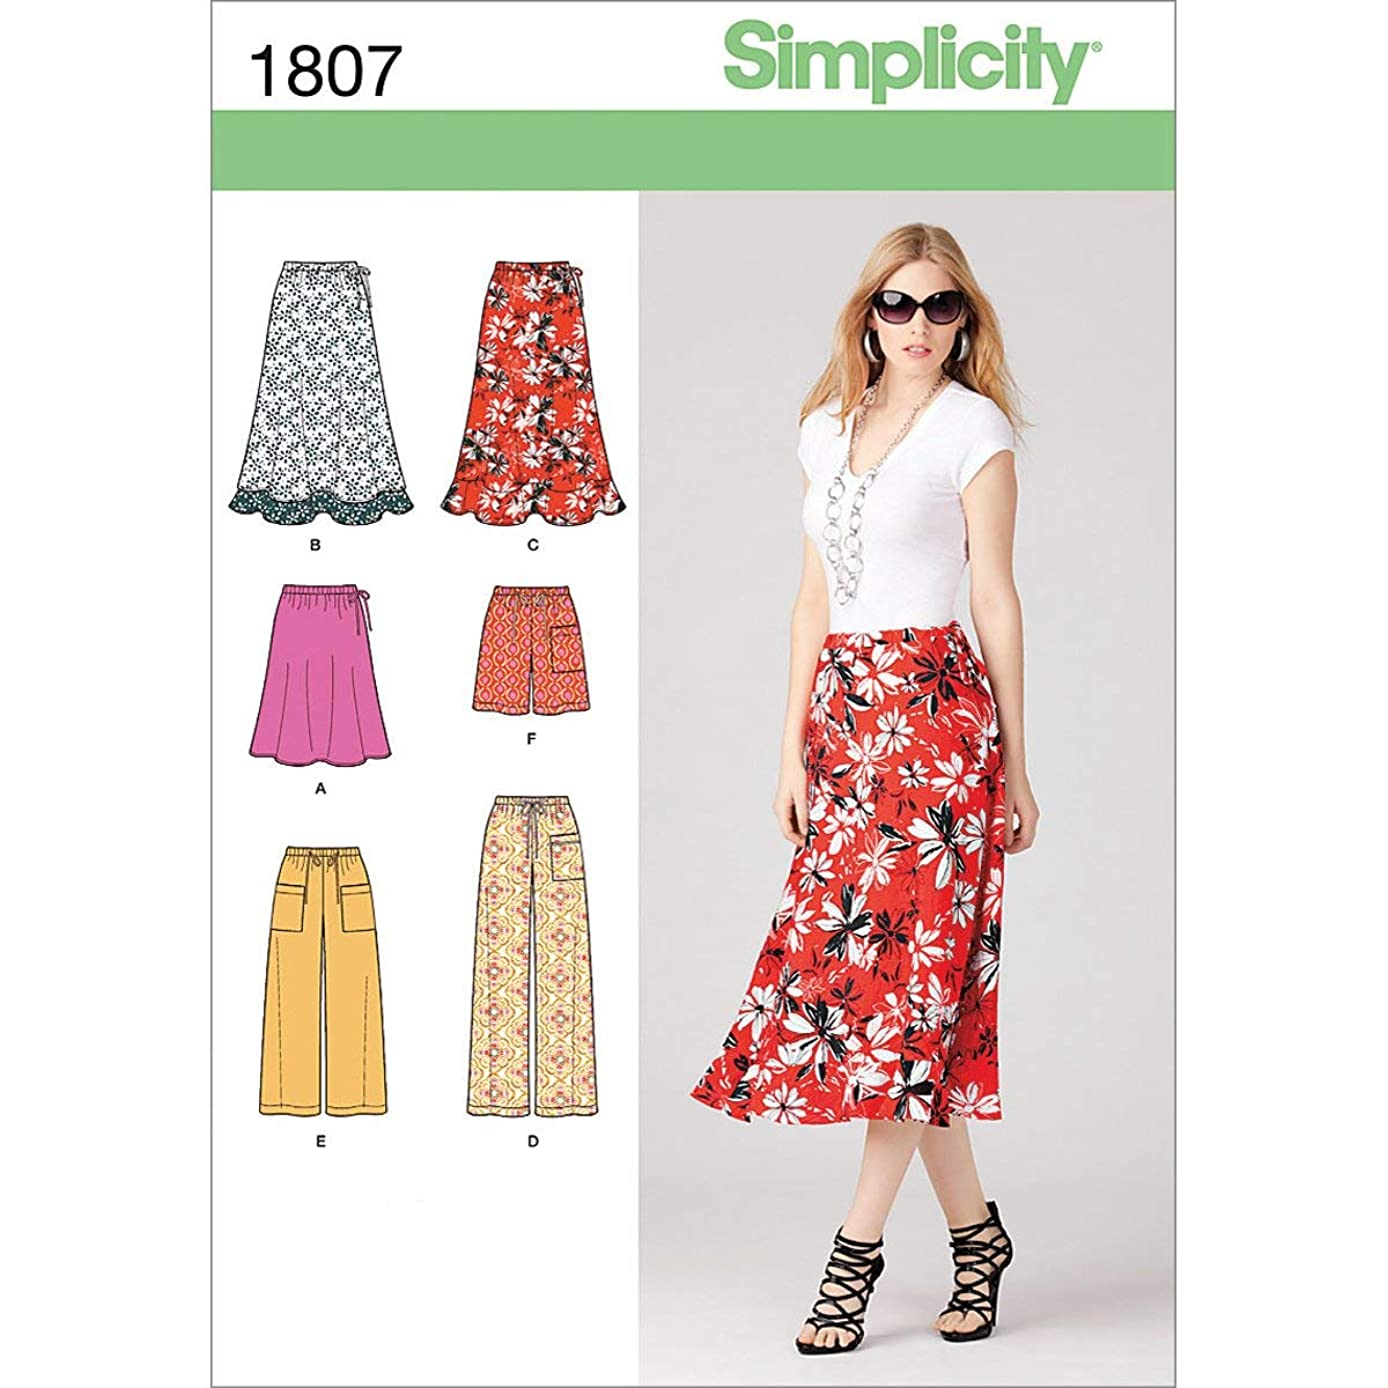 Simplicity Pattern 1807 Misses Skirt in 2 Lengths and Pants in 2 Lengths and Shorts Sizes 16-18-20-22-24